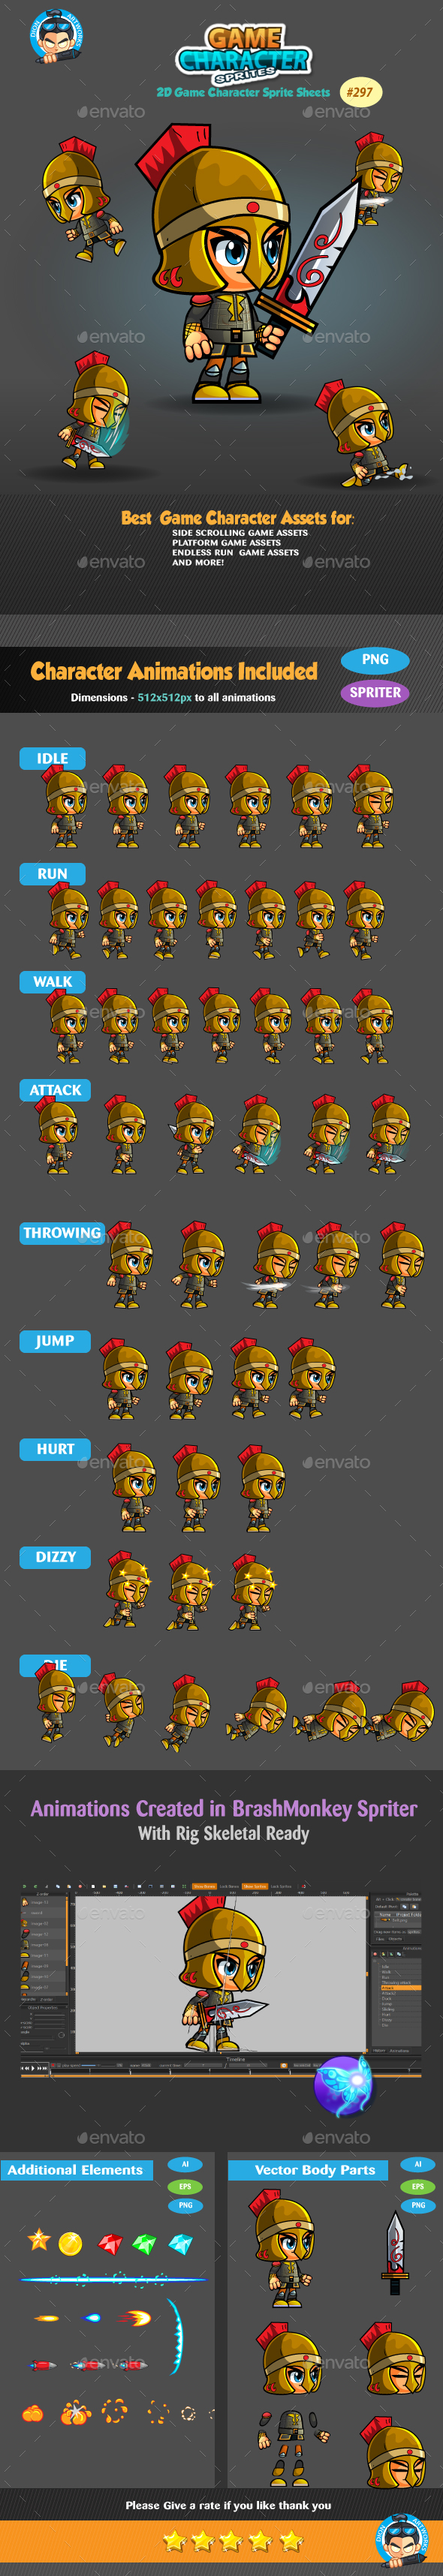 Graphicriver Knight 2D Game Character Sprites 297 19291888 torrent